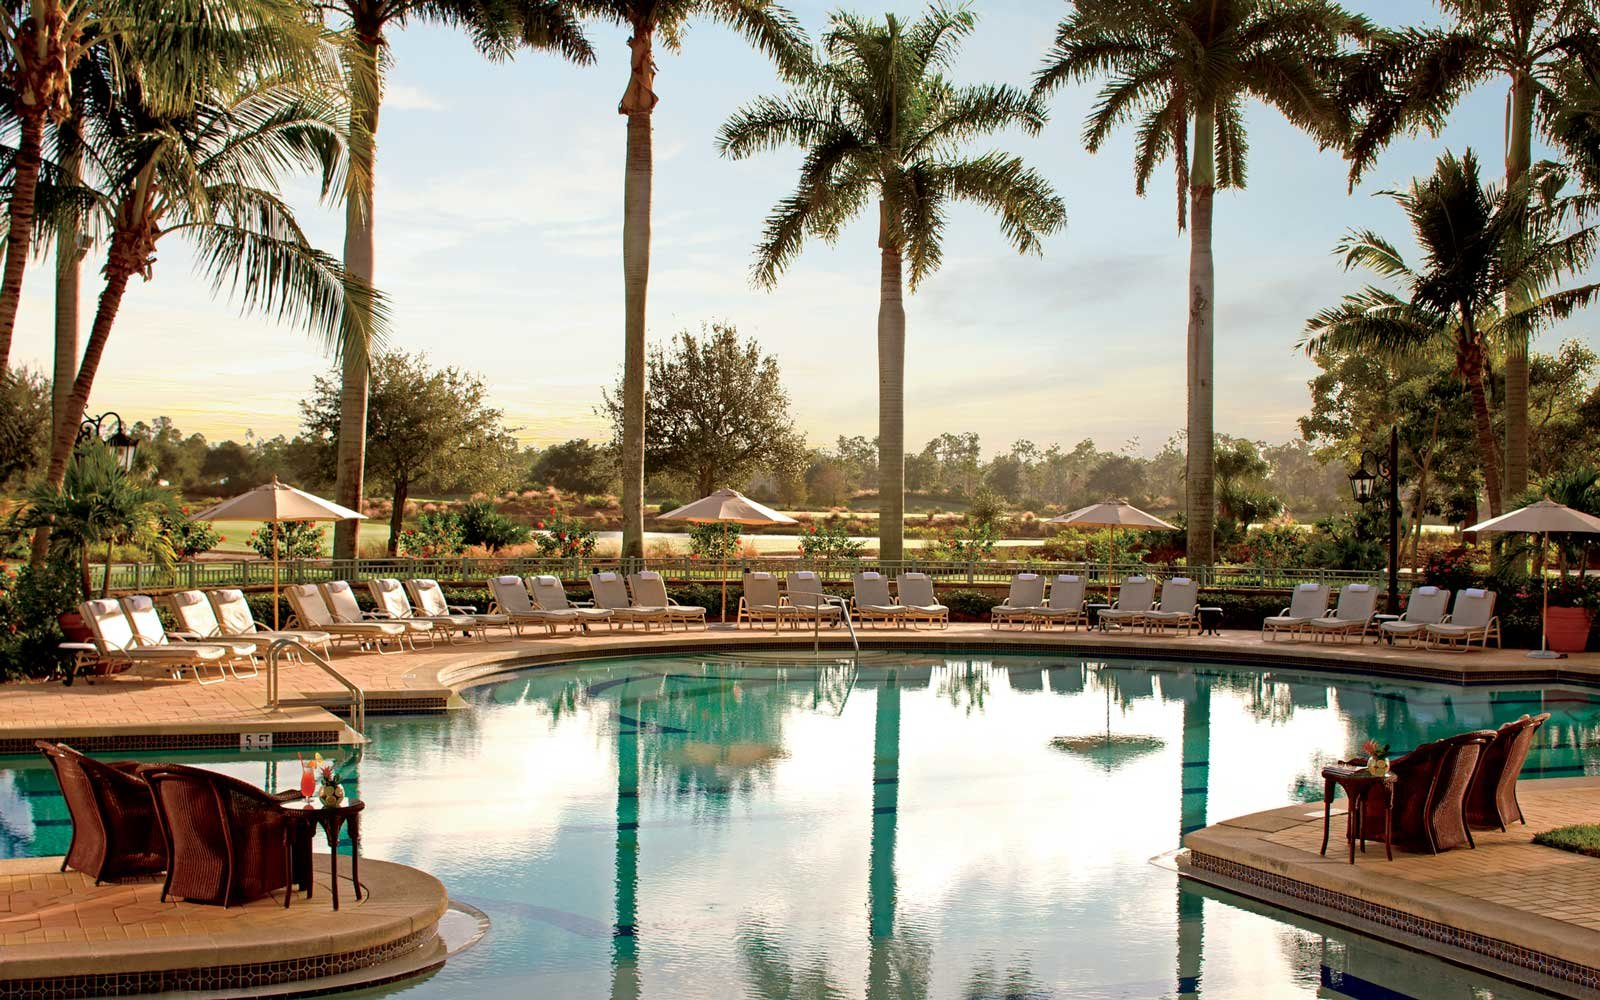 A pool at the Ritz-Carlton Golf Resort in Naples, Florida